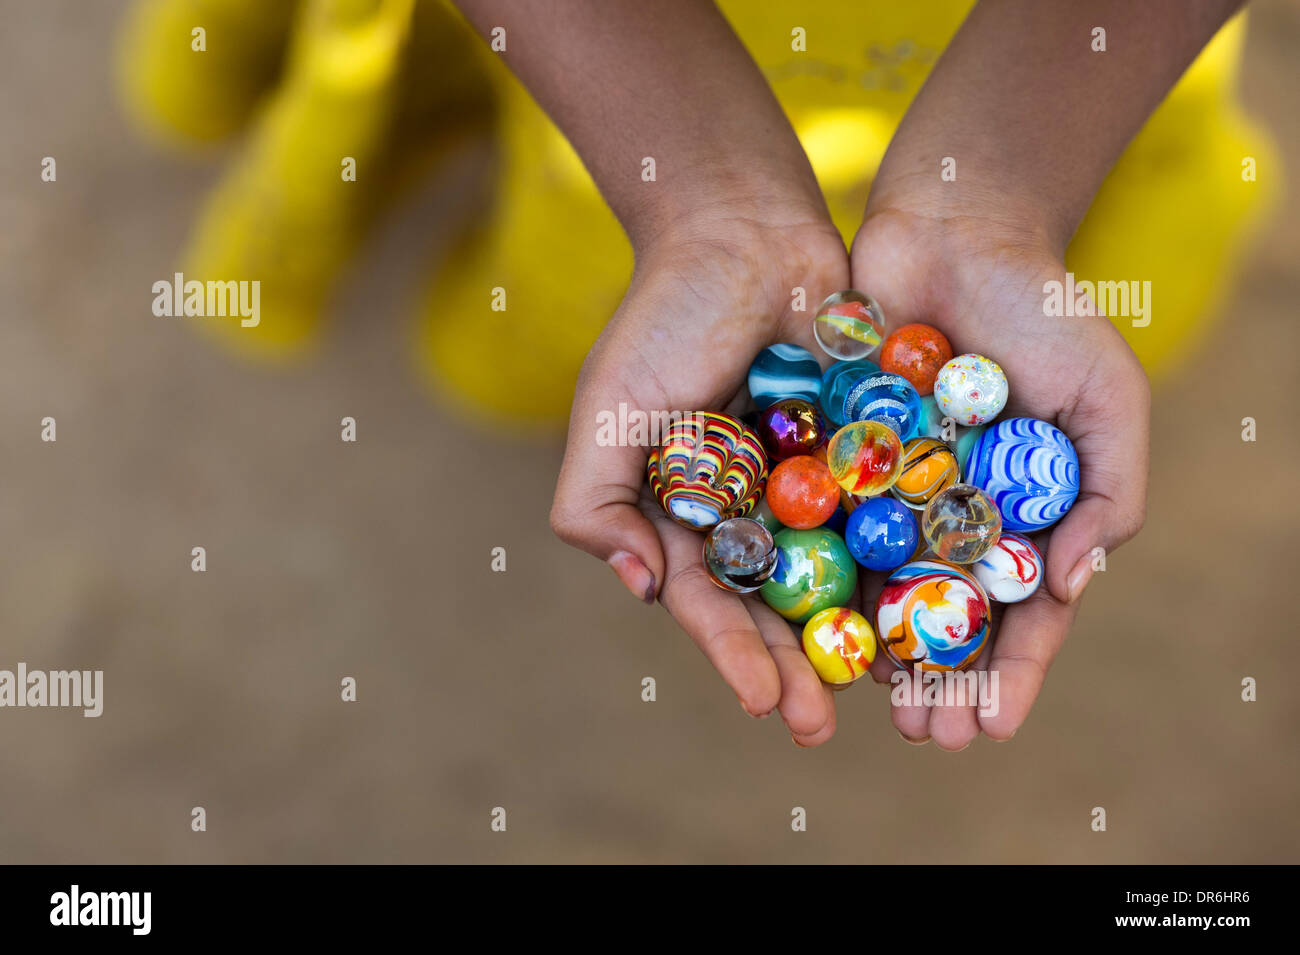 Les filles indiennes hands holding colorful marbles Photo Stock